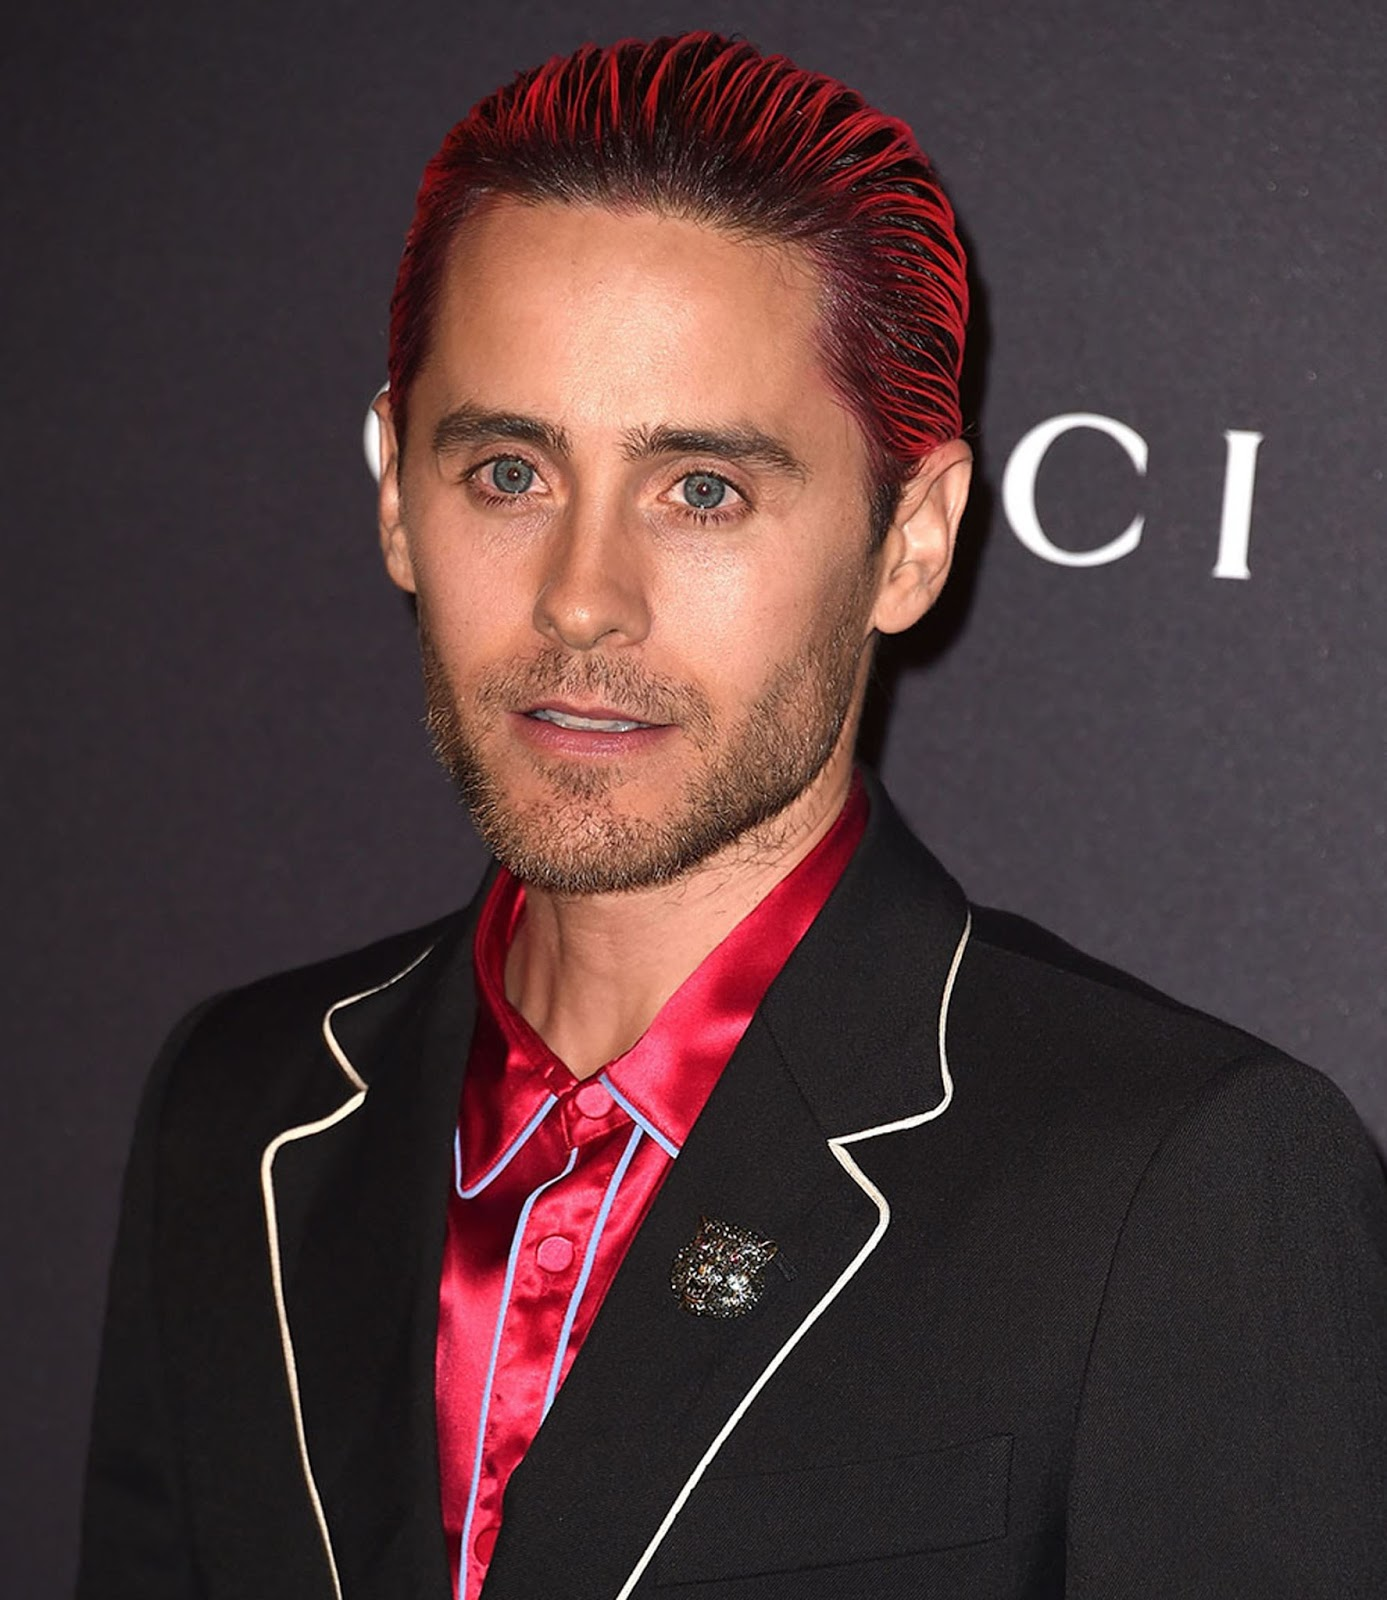 News on Fashion - January 2016 - Jared Leto - Gucci